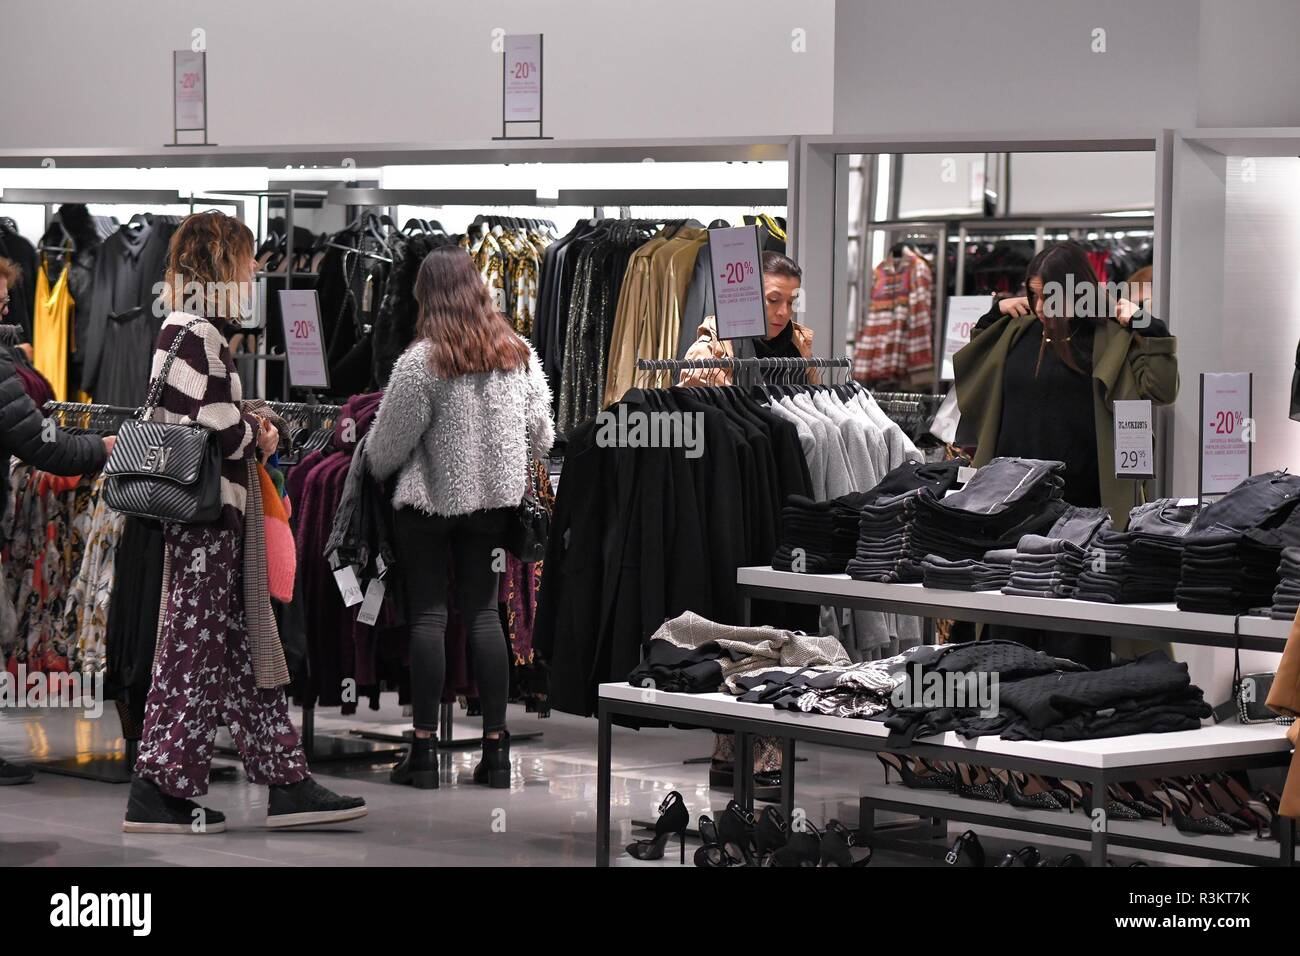 Sconti Stockfotos & Sconti Bilder - Alamy